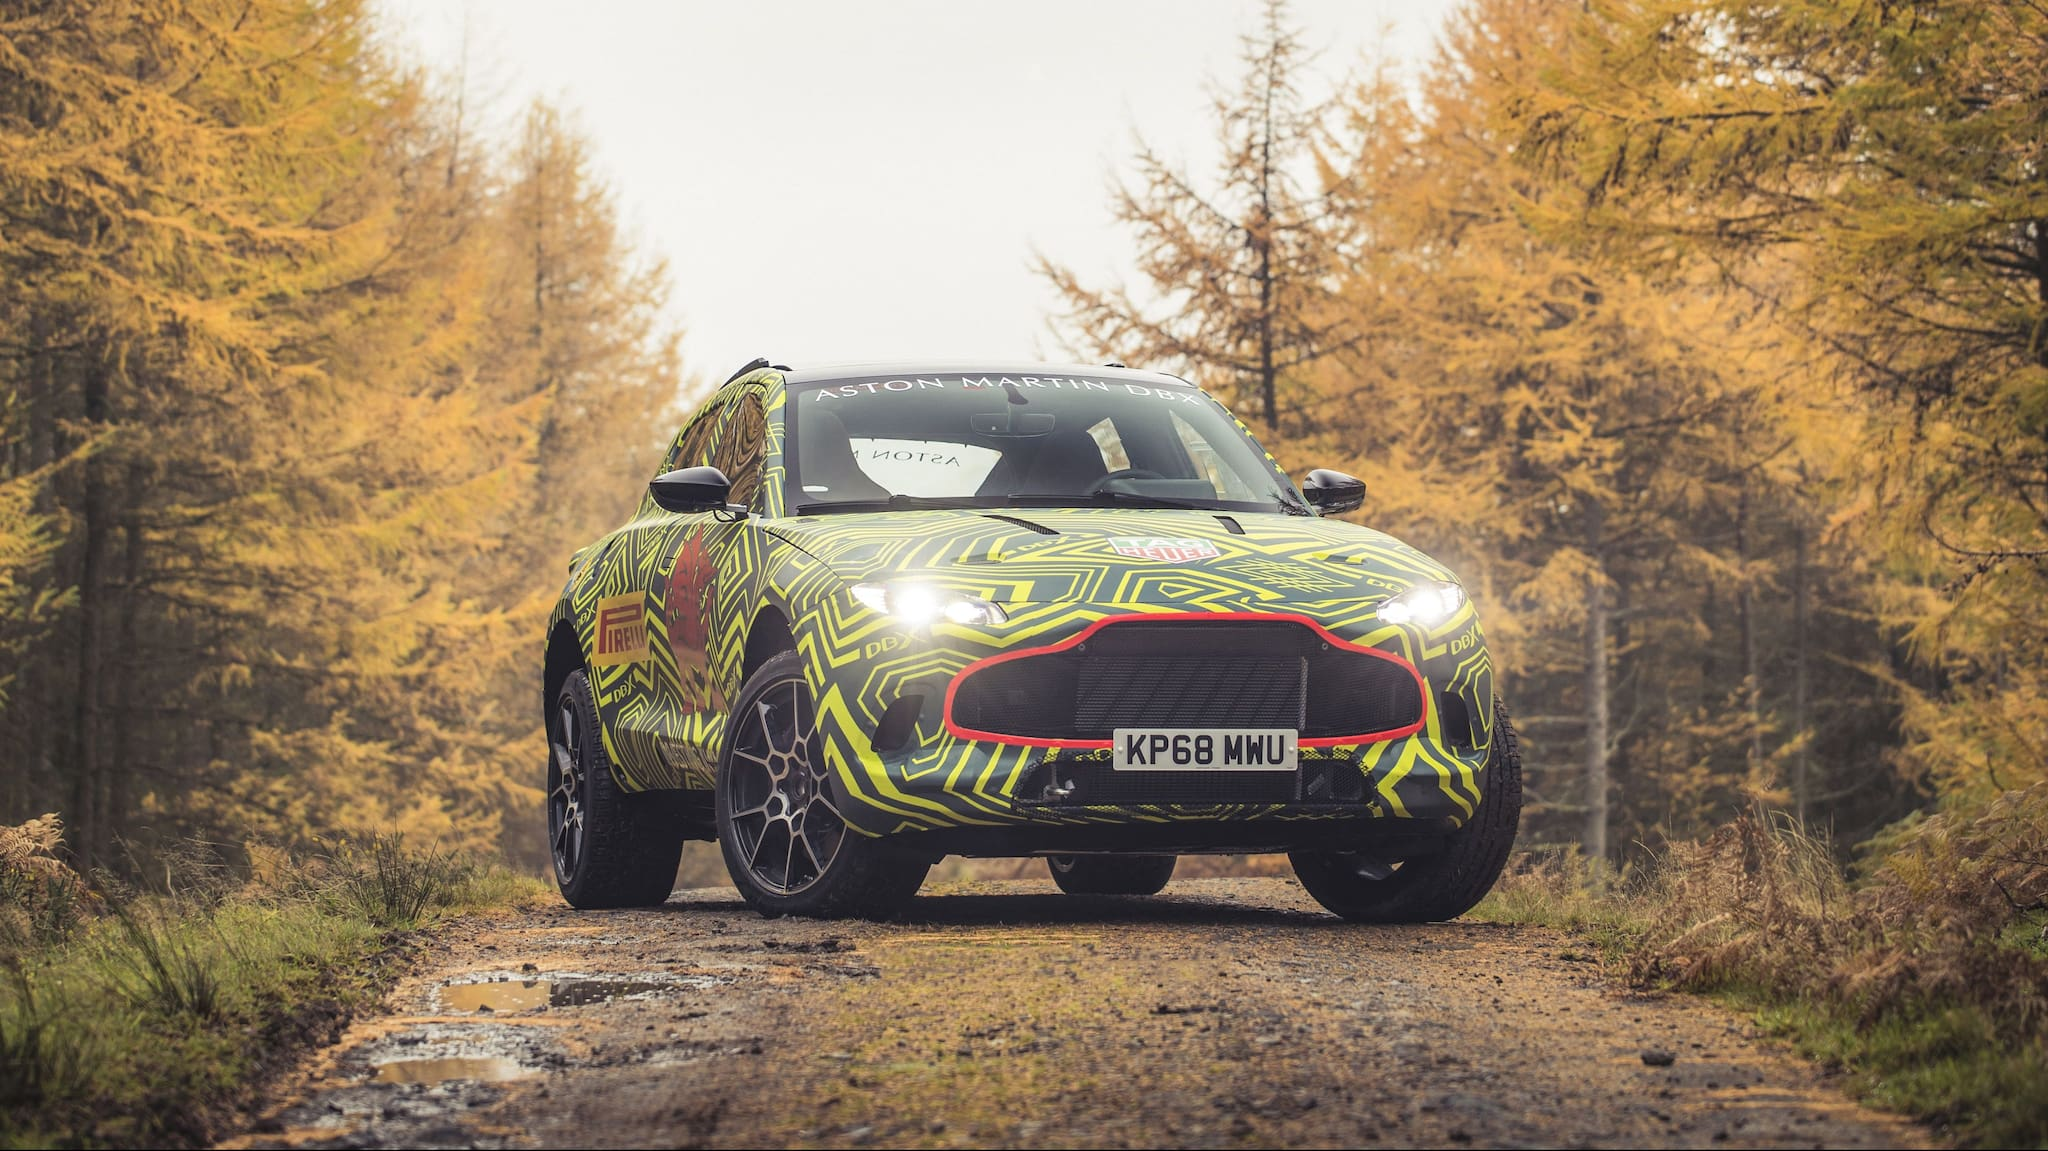 Aston Martin Begins Real-World Tests of Aston Martin DBX, Its First-Ever SUV